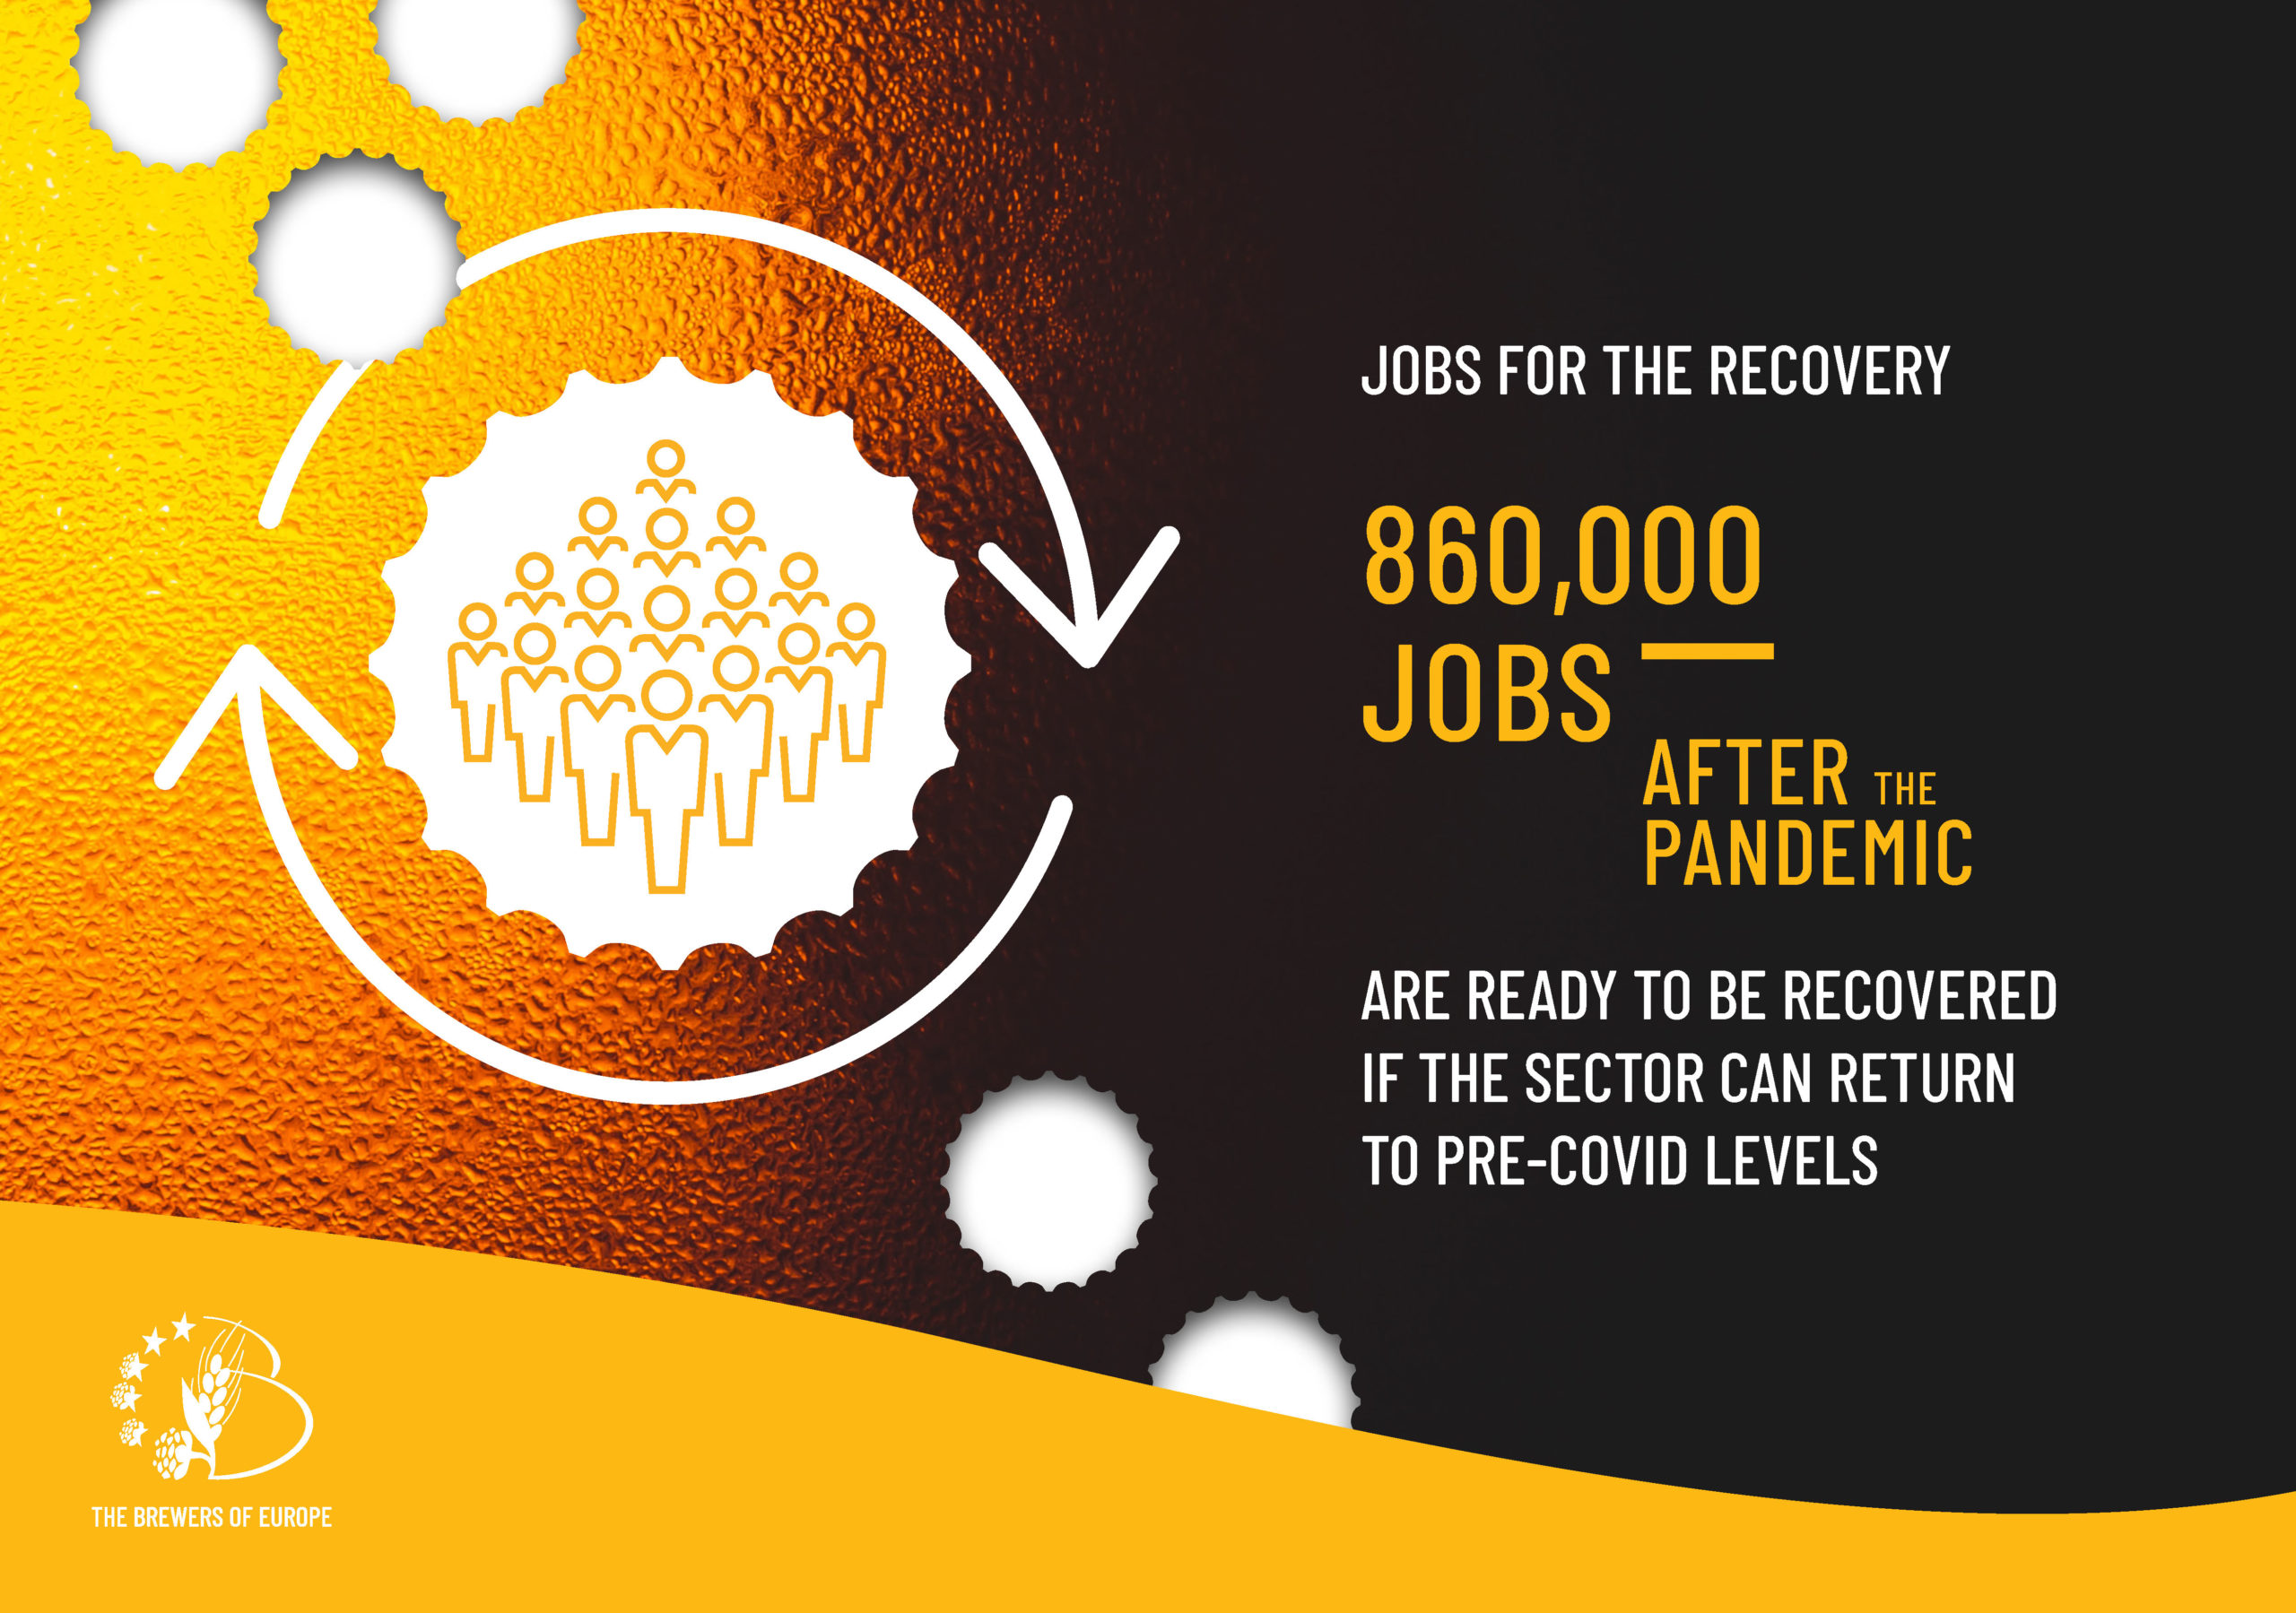 860,000 jobs are ready to be recovered if the beer sector can return to pre-covid levels